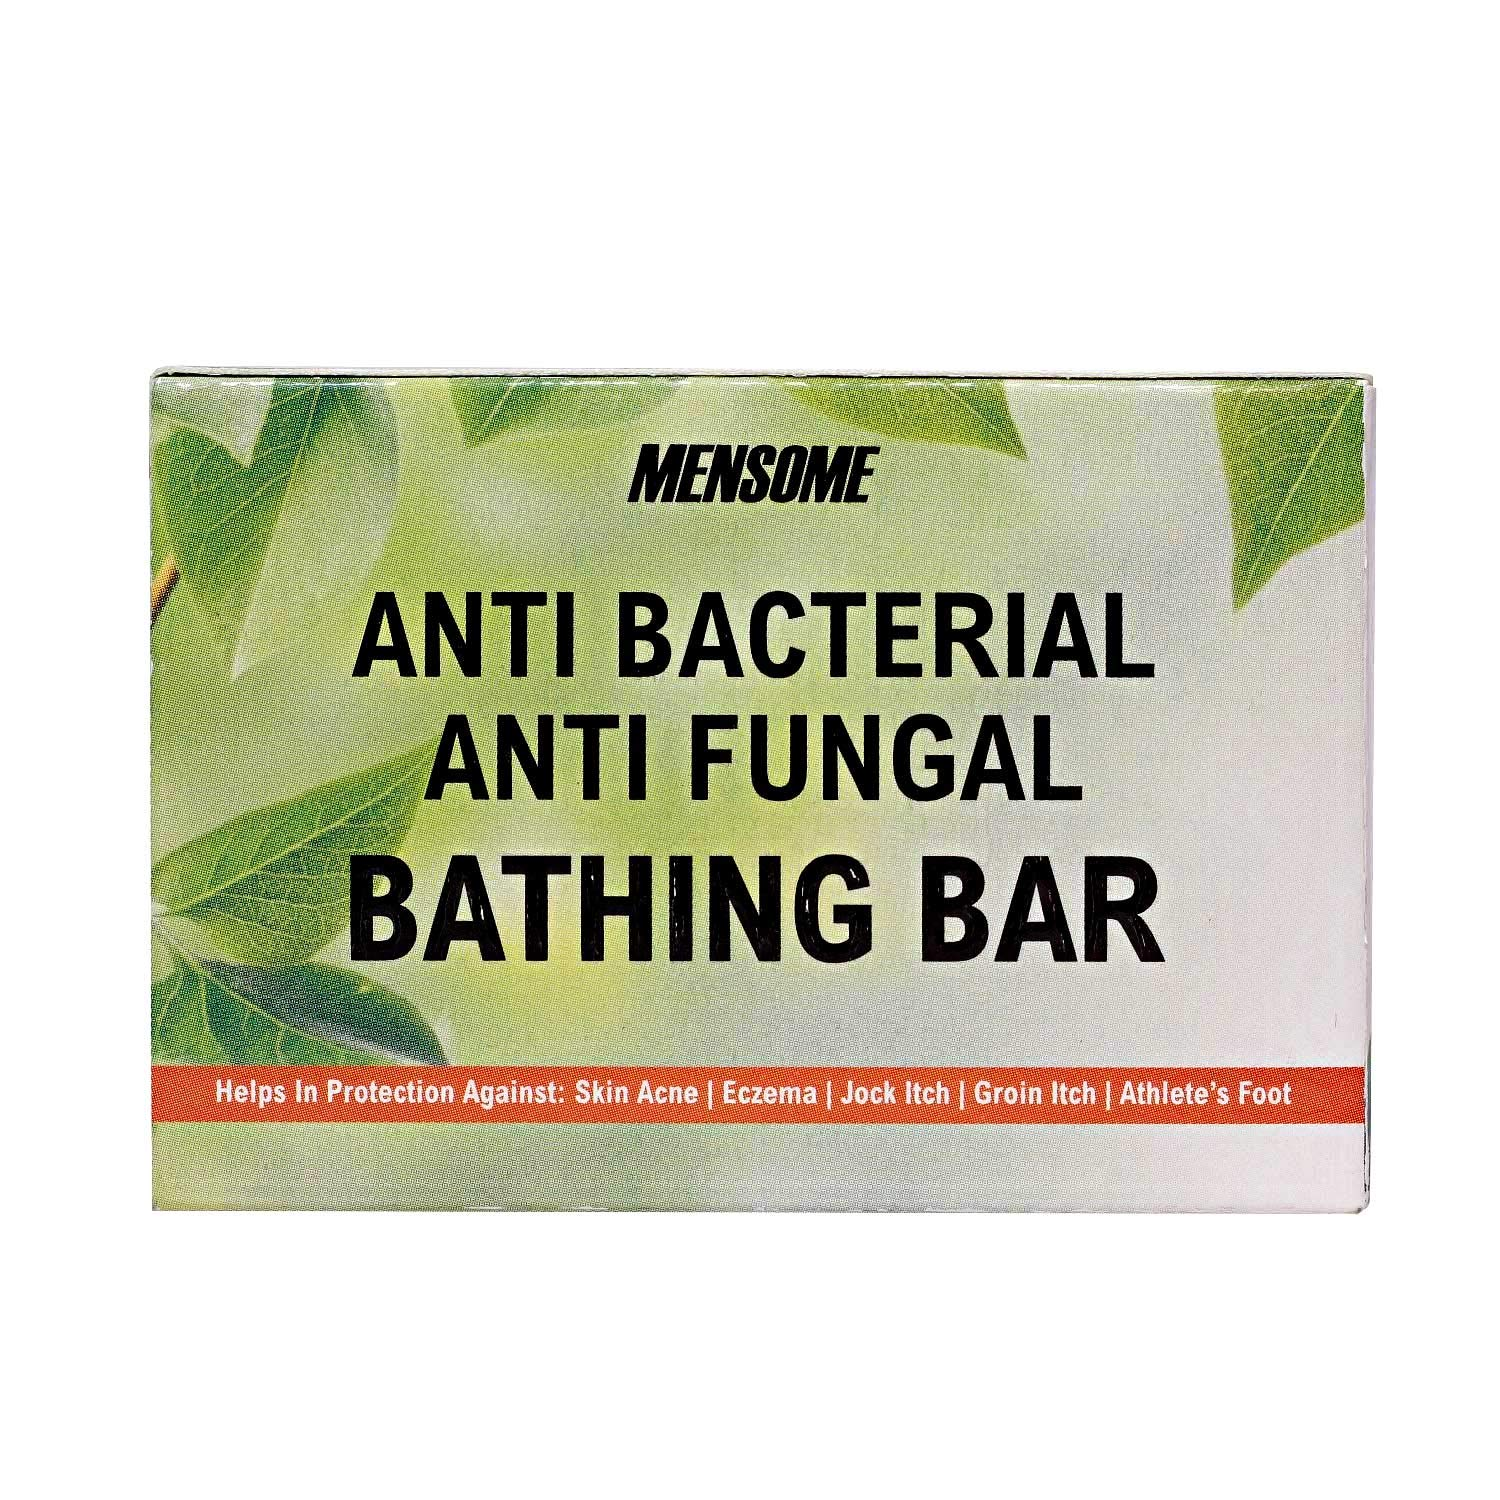 MENSOME Anti Bacterial Bathing Soap Bar Helps in Fighting Skin Infections, Acne, Itching and made up of natural oils and herbs in Pack of 12